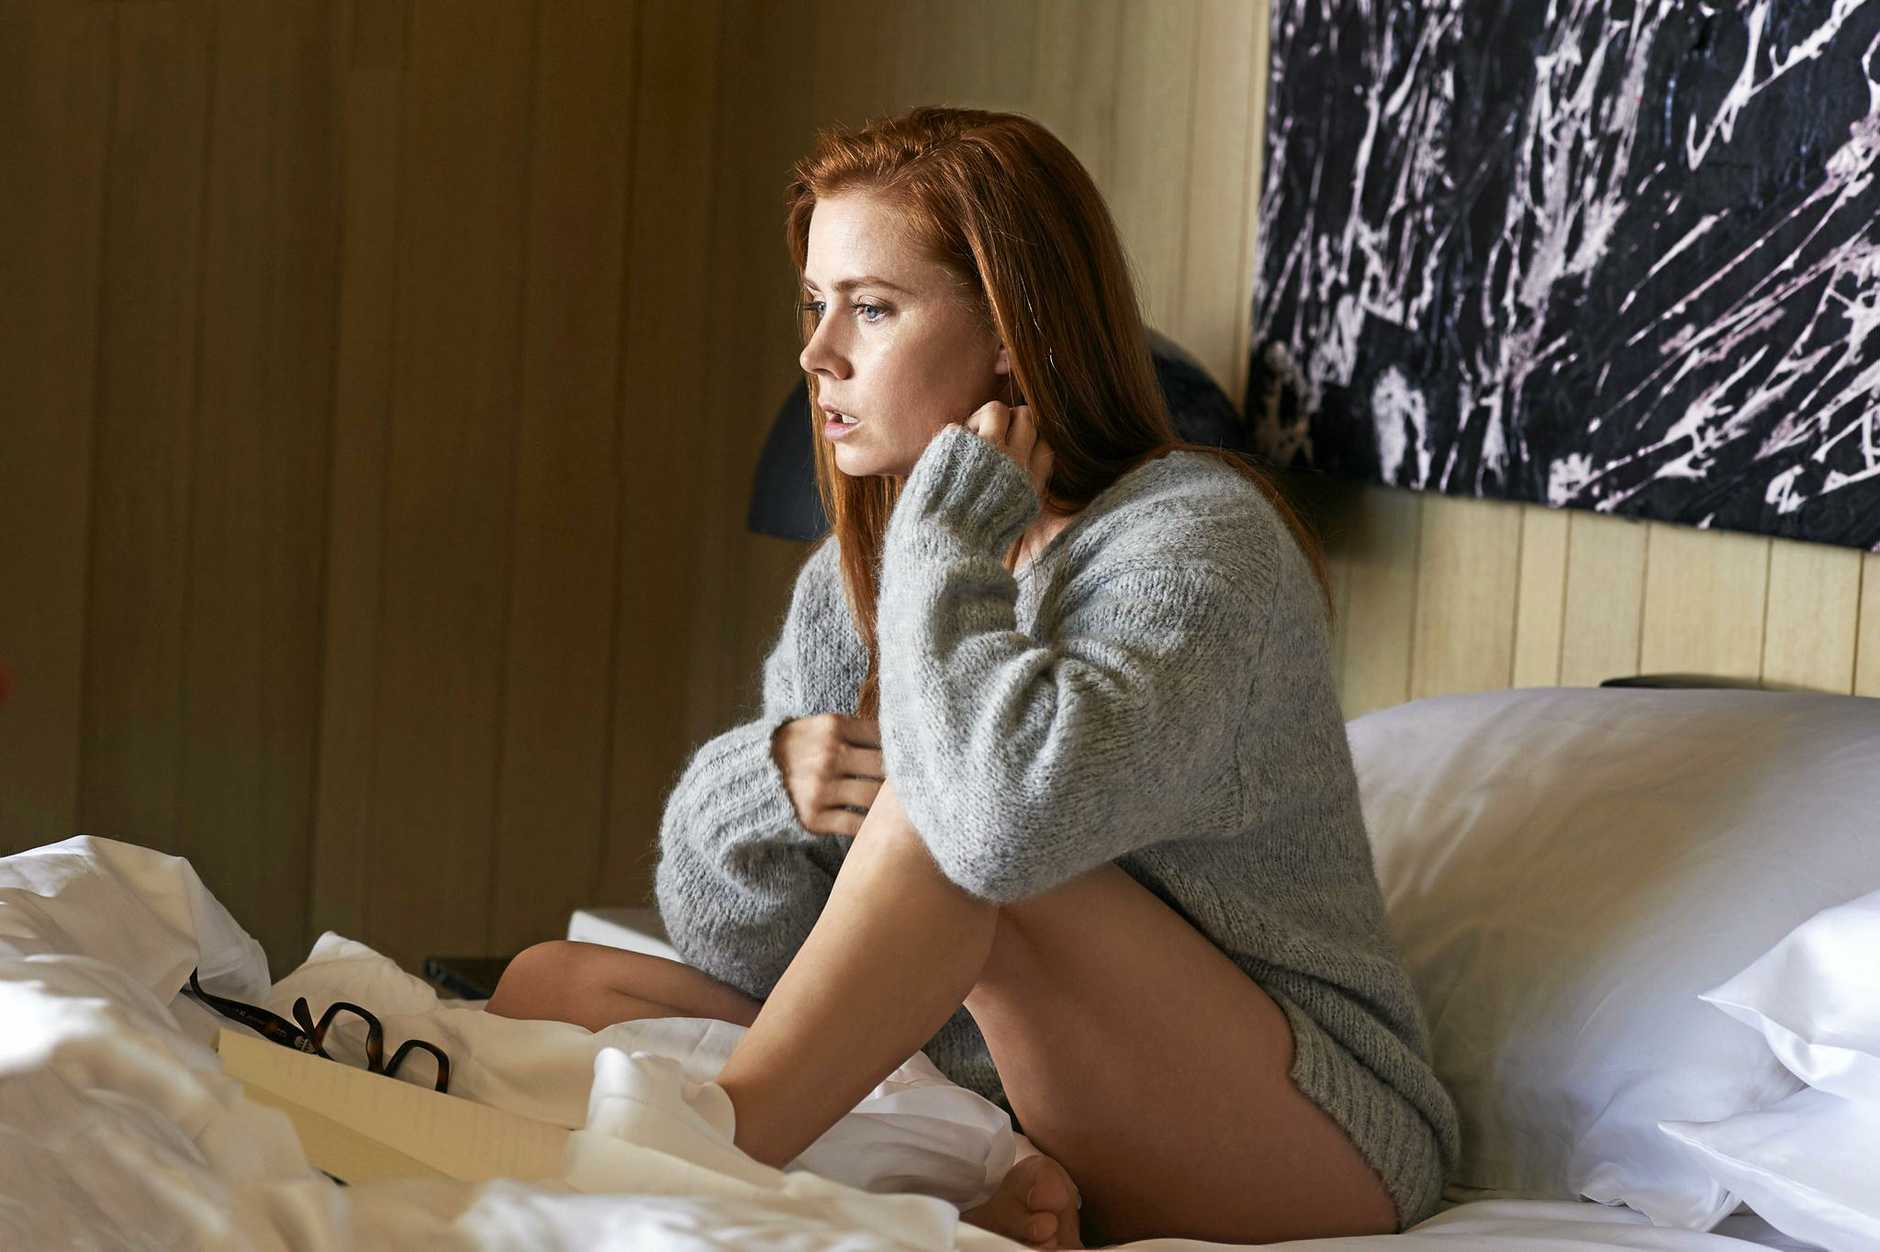 Nocturnal Animals looks at the lives of Susan Morrow (Amy Adams) and her ex-husband Edward Sheffield (Jake Gyllenhaal).